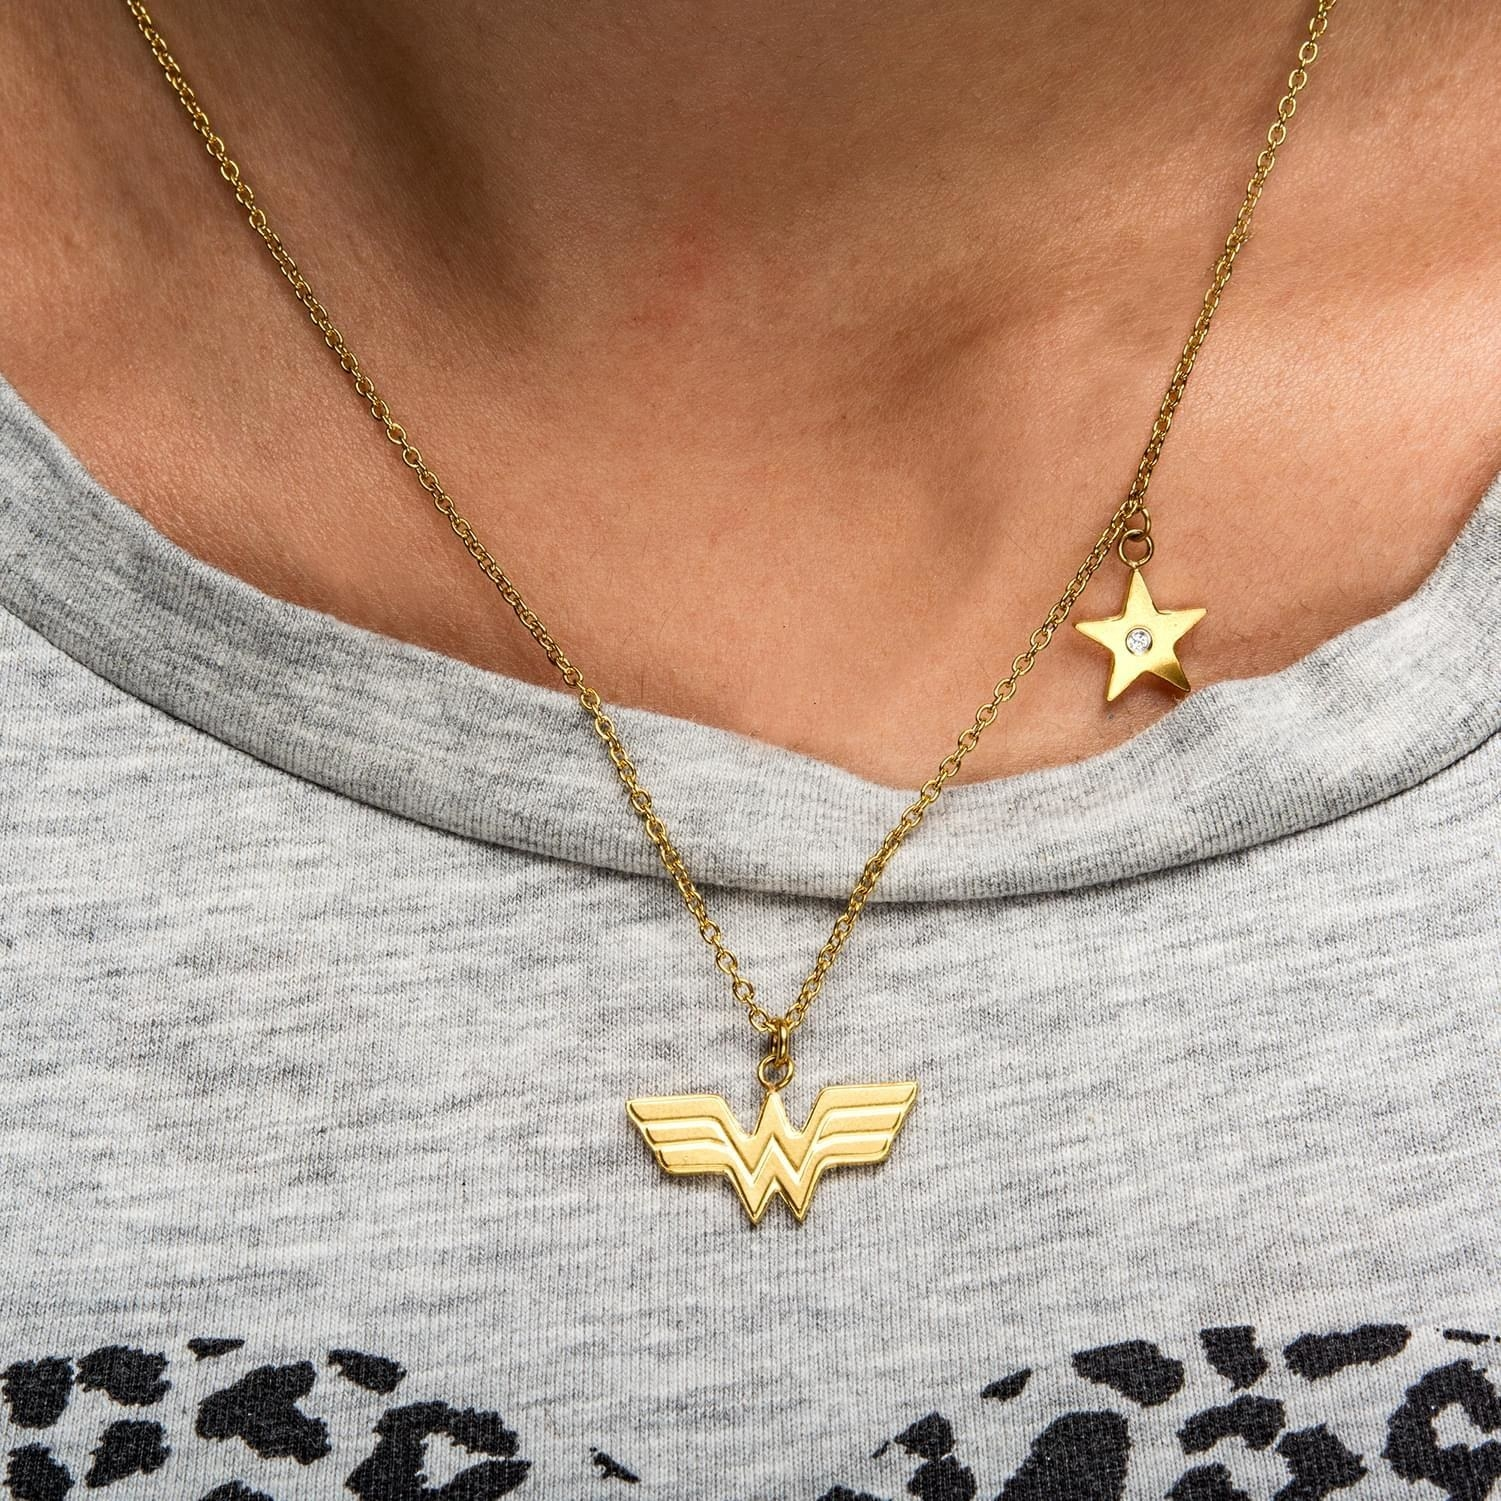 The delicate gold pendant necklace with a Wonder Woman logo charm and star charm with rhinestone in the center